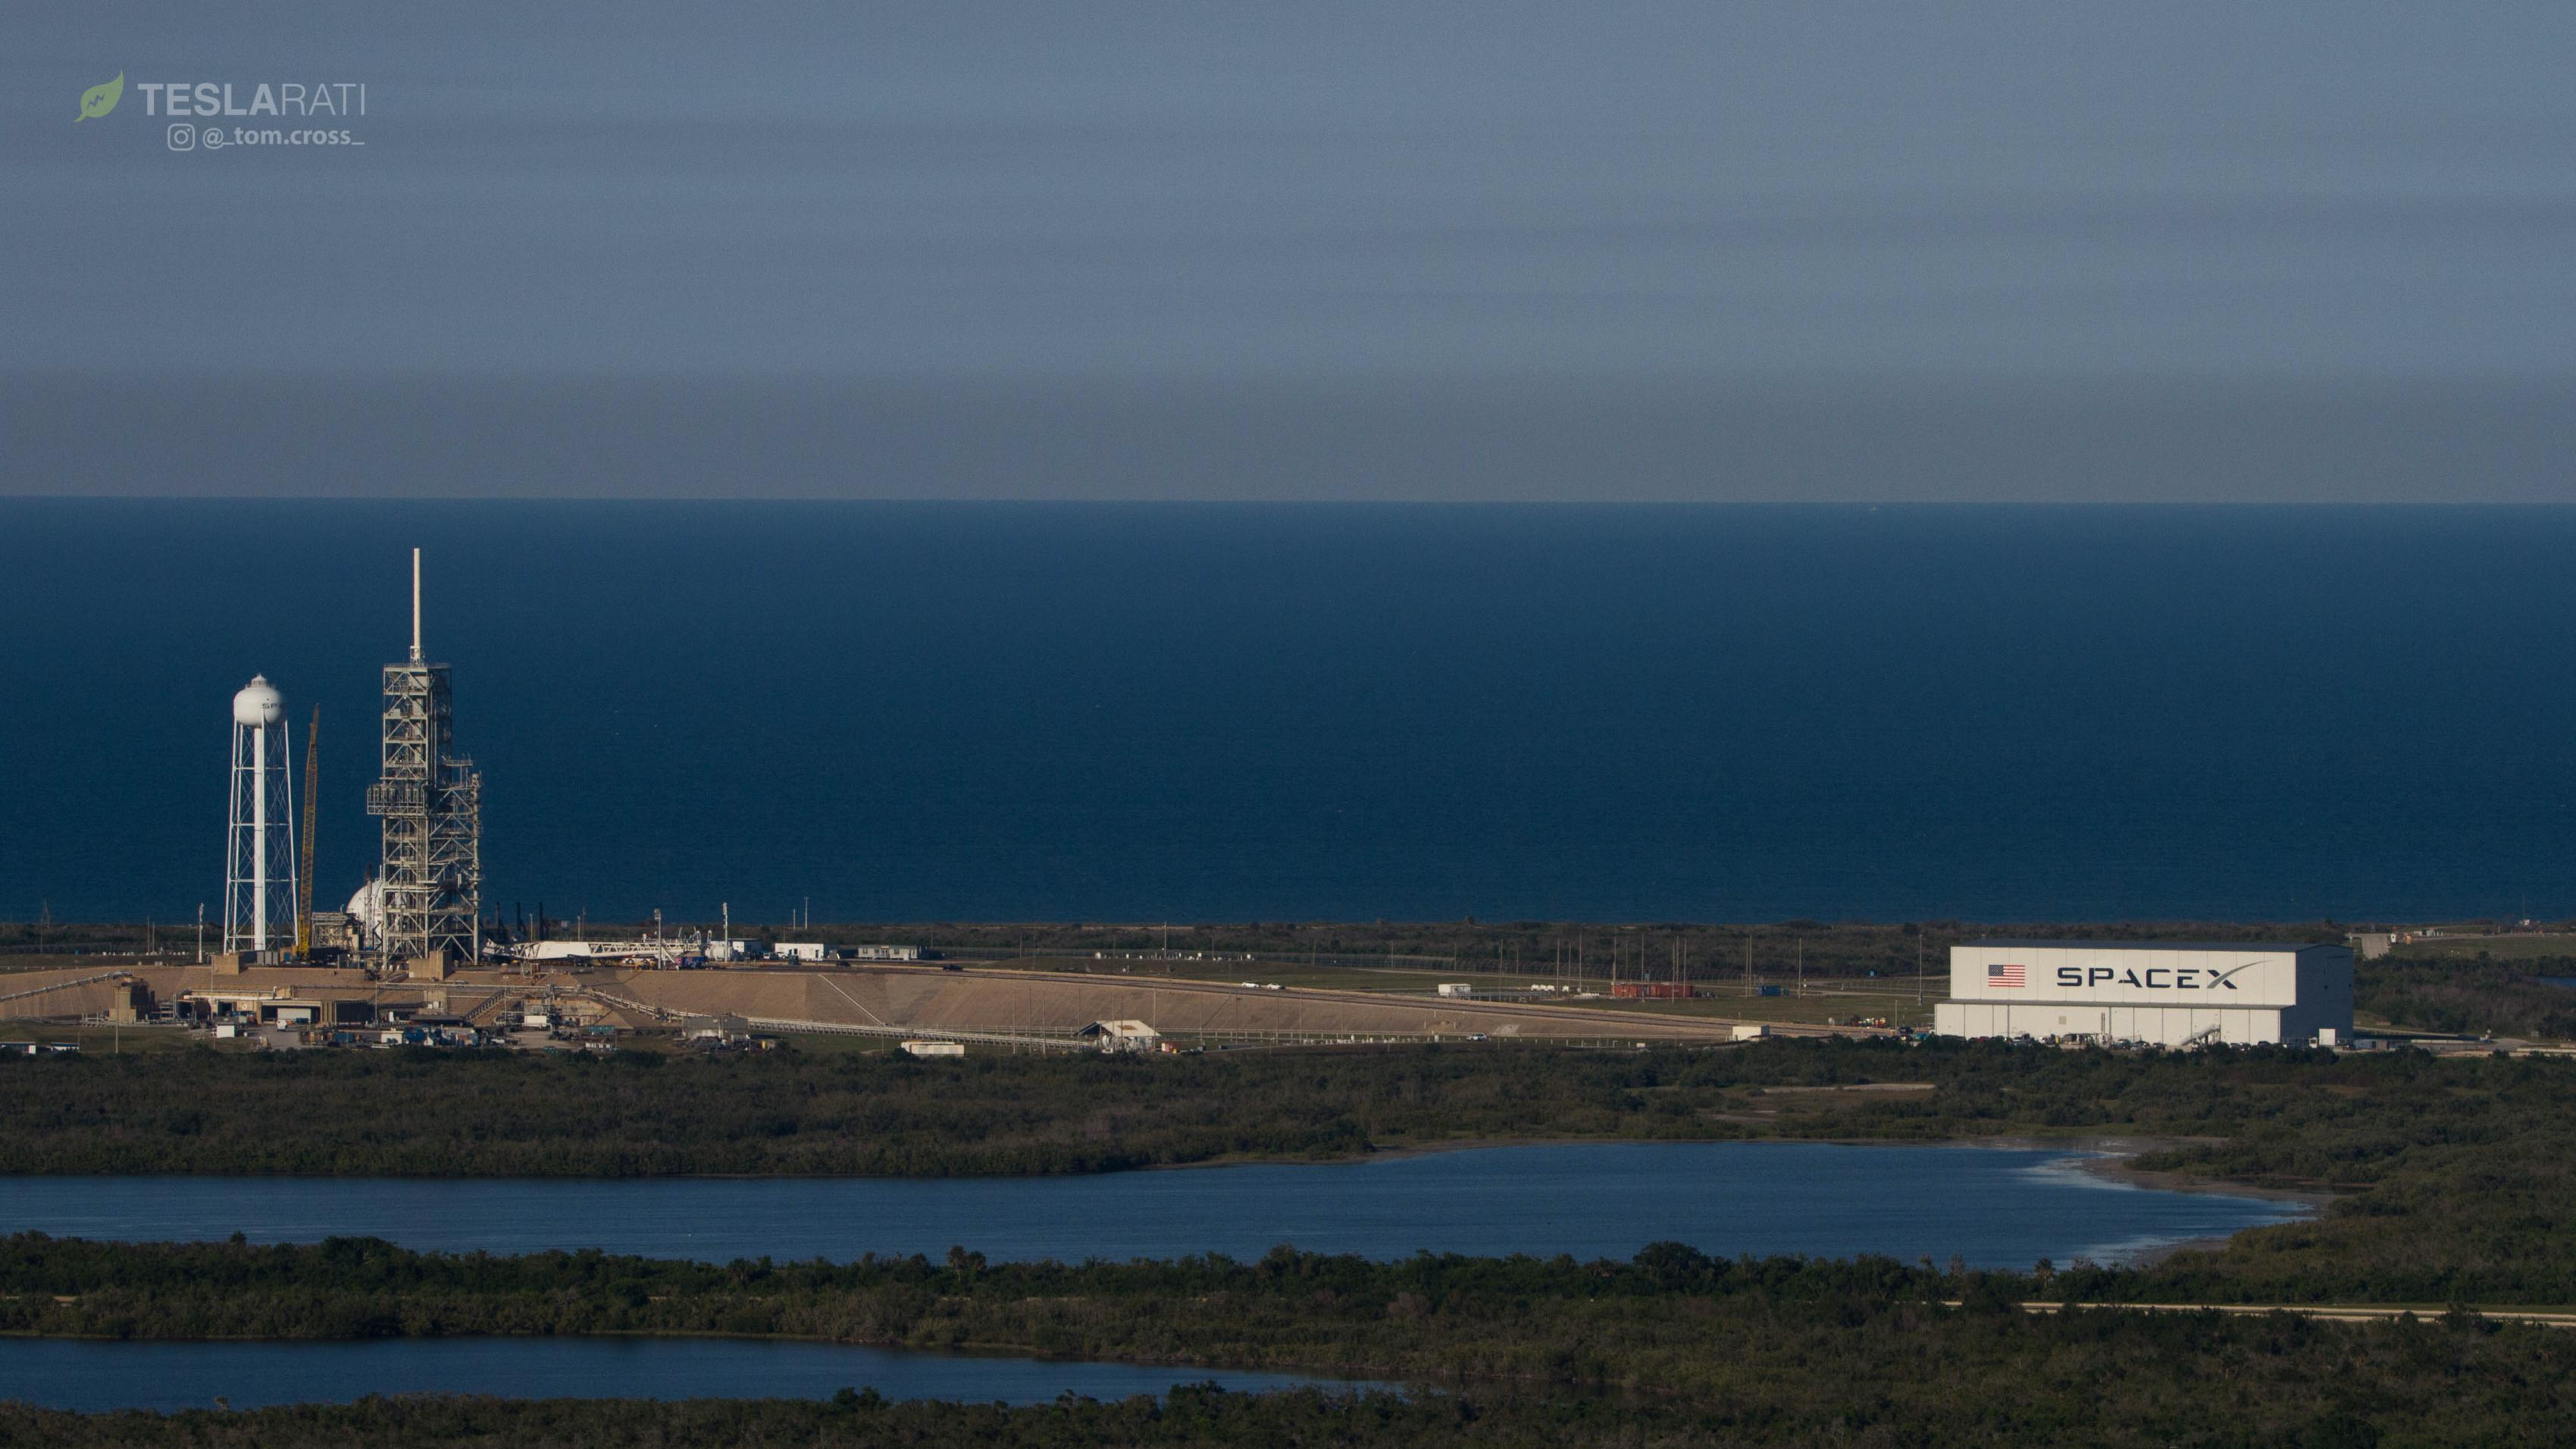 SpaceX LC-39A overview 041818 (Tom Cross)(c)